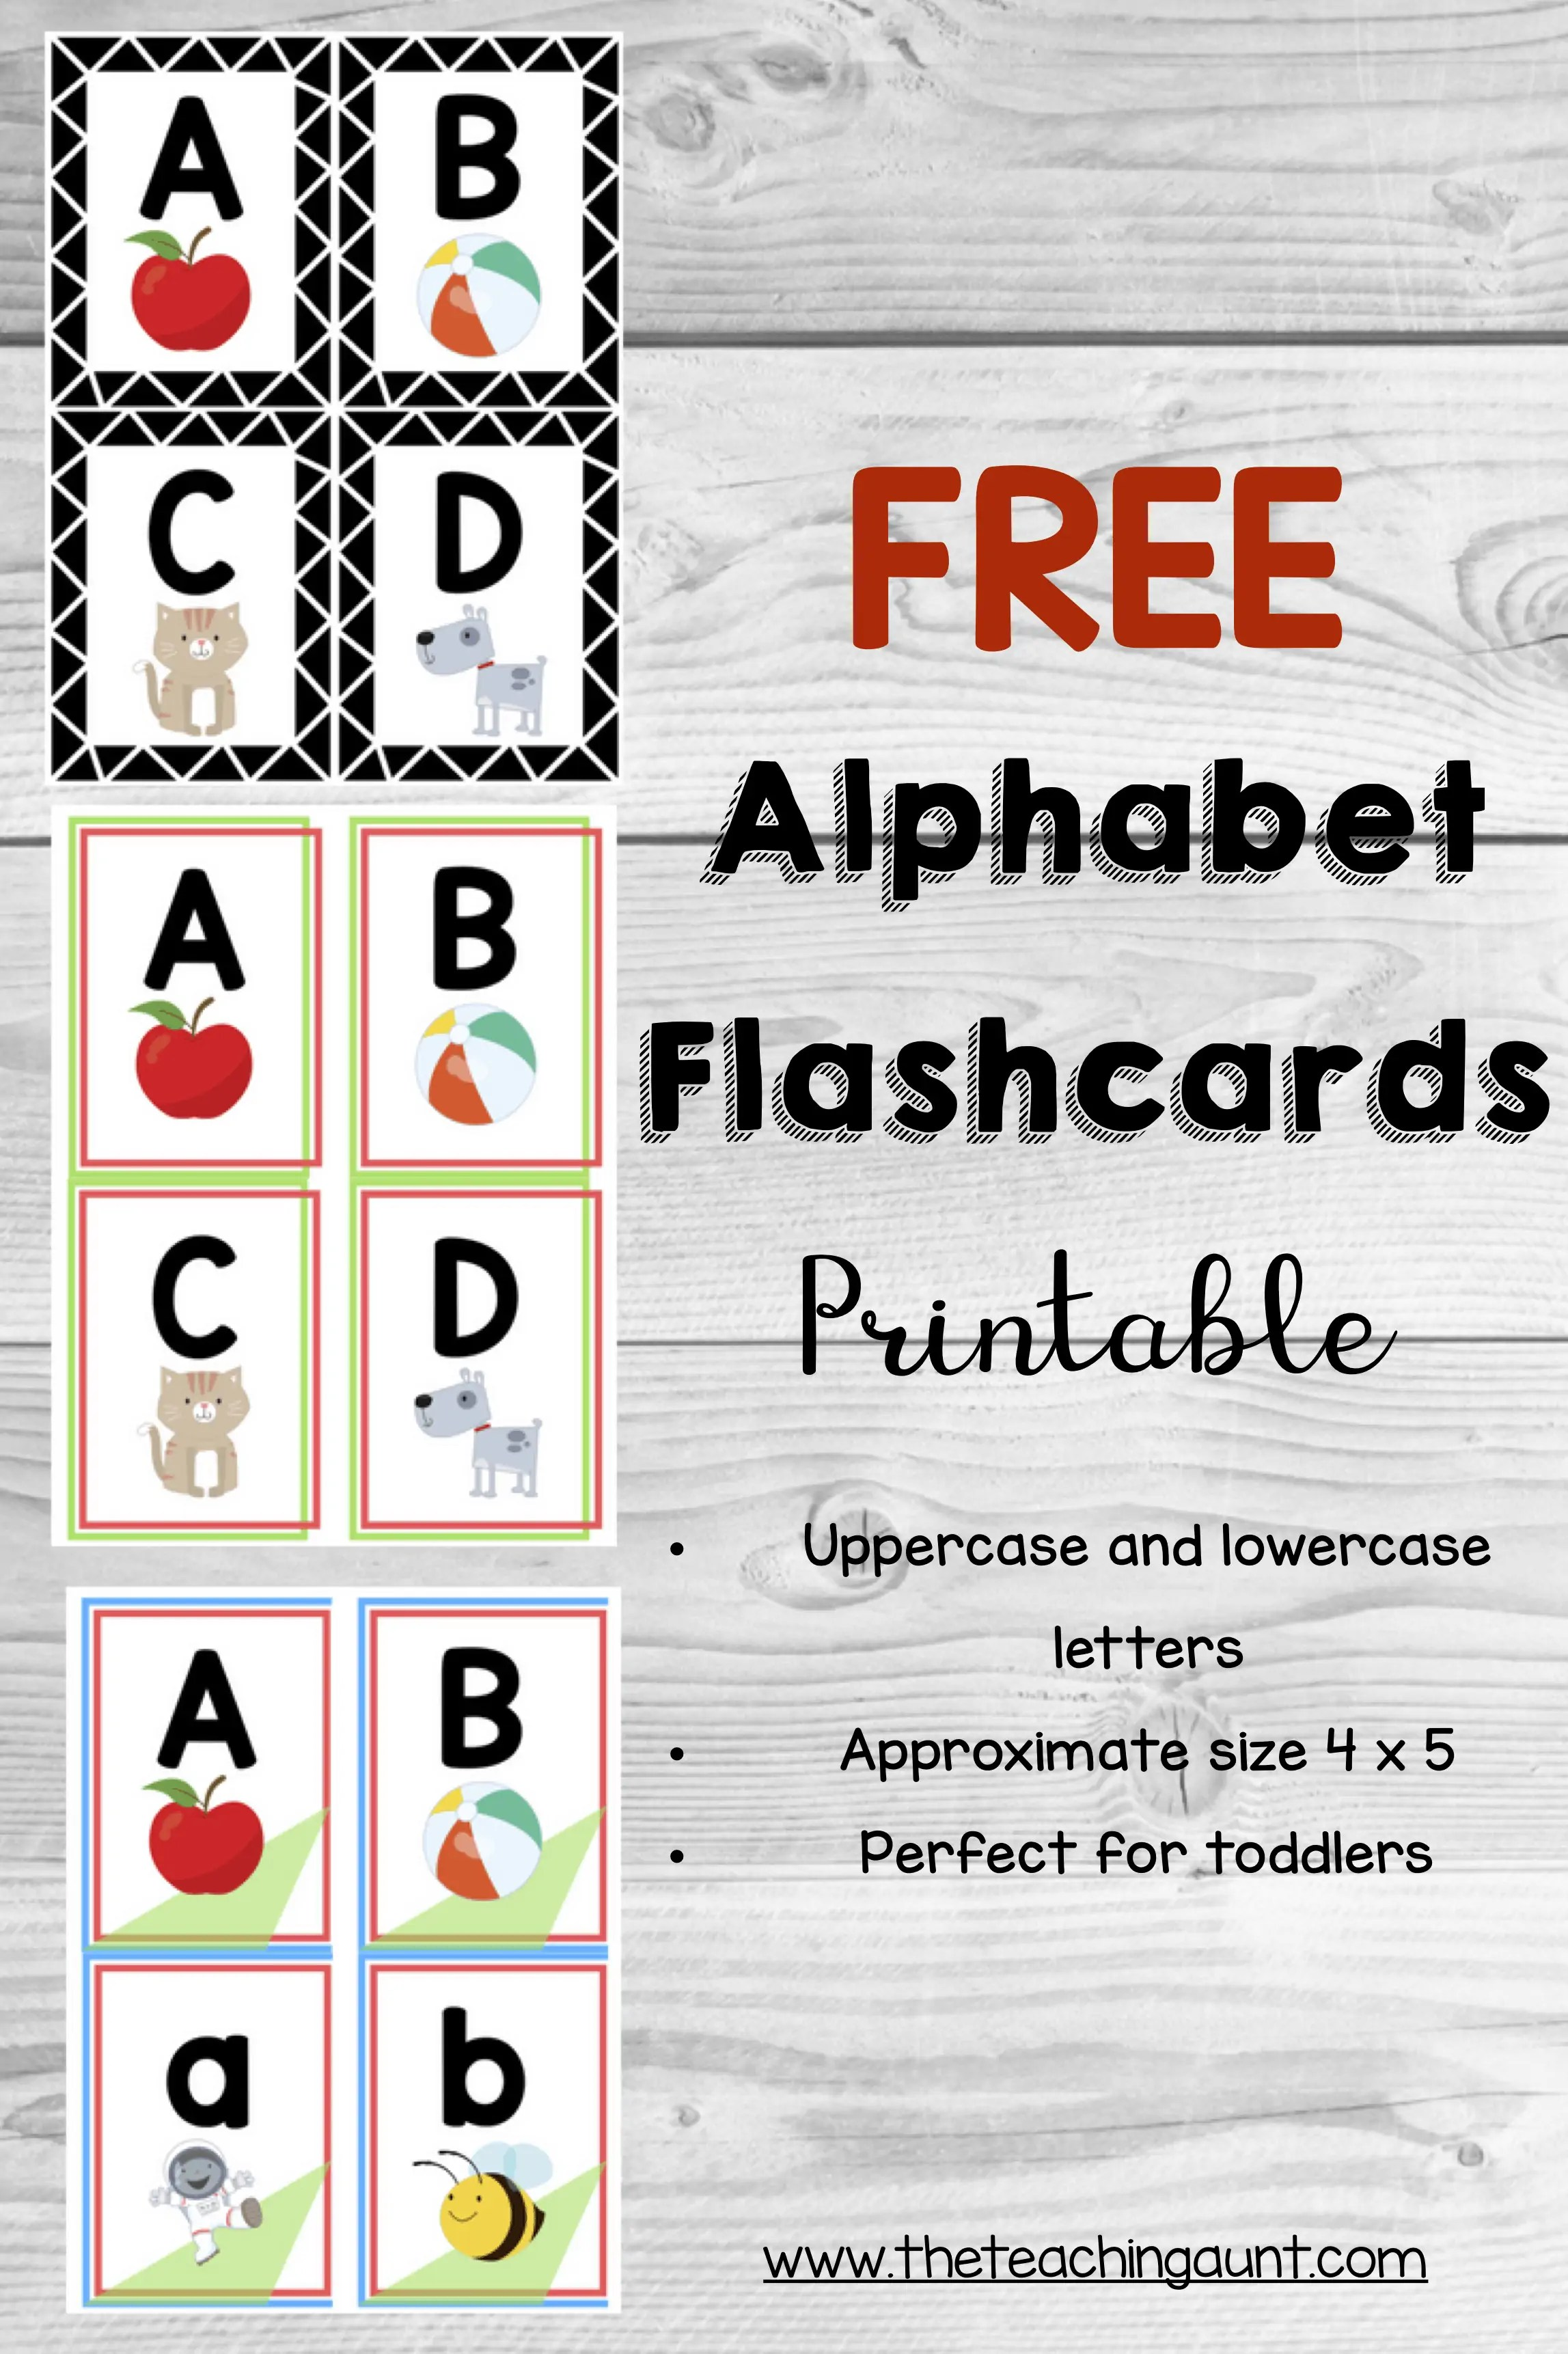 picture relating to Free Printable Abc Flash Cards named Alphabet Flashcards No cost Printable - The Schooling Aunt